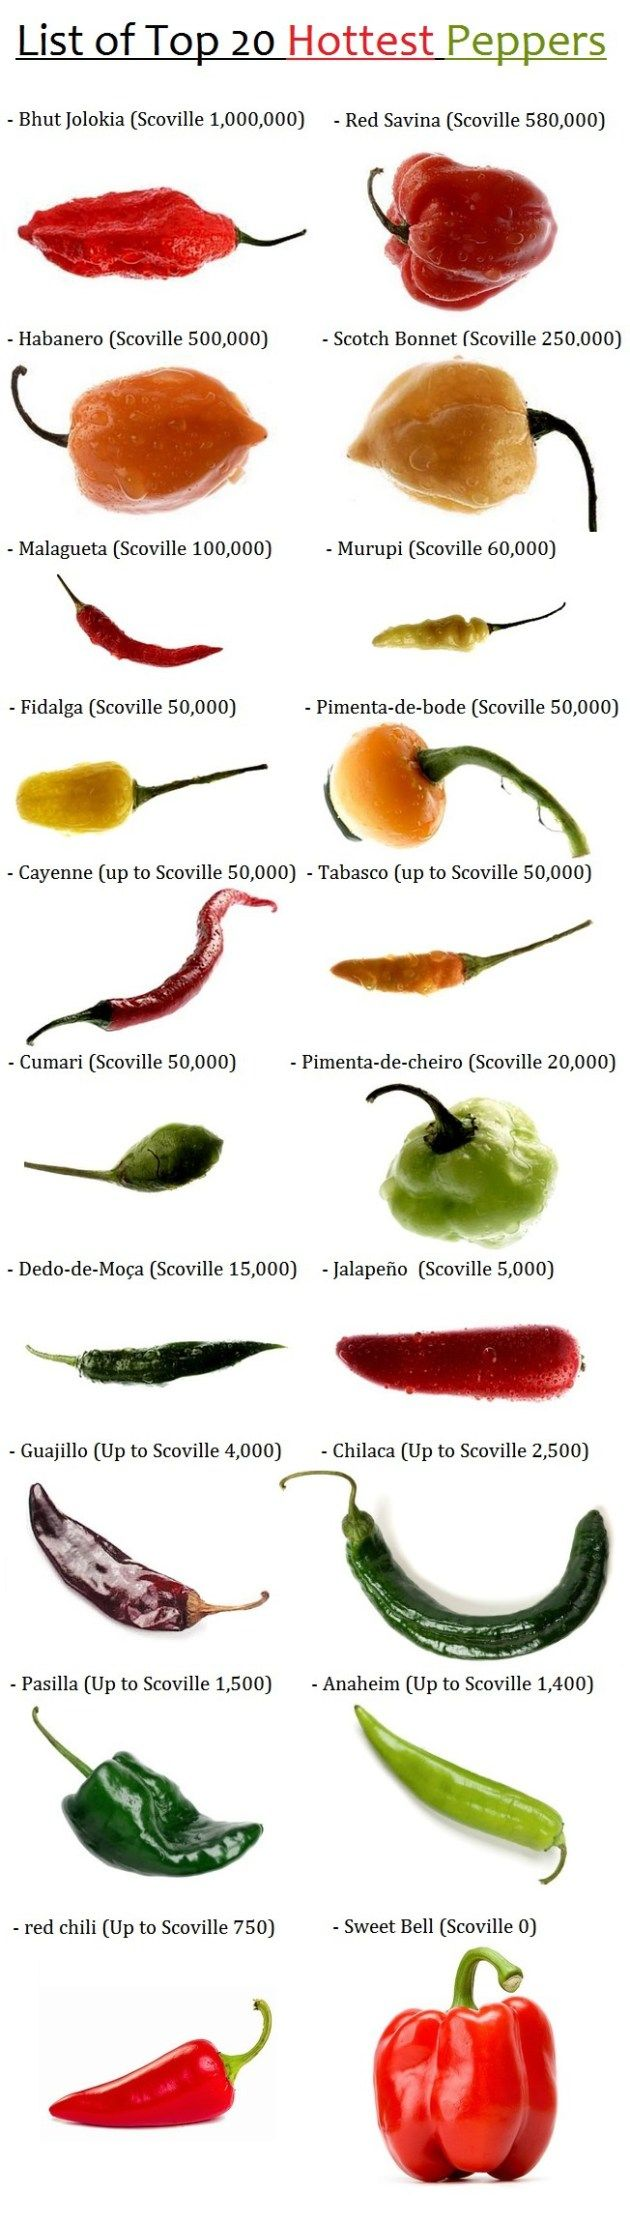 Peppers by Heat Scale : Bhut Jolokia (Scoville 1,000,000) Red Savina (up to Scoville 580,000) Habanero (Scoville 500,000) Scotch Bonnet (Scoville 250,000) Malagueta (Scoville 100,000) Murupi (Scoville 60,000) Fidalga (Scoville 50,000) Pimenta-de-bode (Scoville 50,000) Cayenne (up to Scoville 50,000) Tabasco (up to Scoville 50,000) Cumari (up to Scoville 50,000) Pimenta-de-cheiro (Scoville 20,000) Dedo-de-Moça (Scoville 15,000)